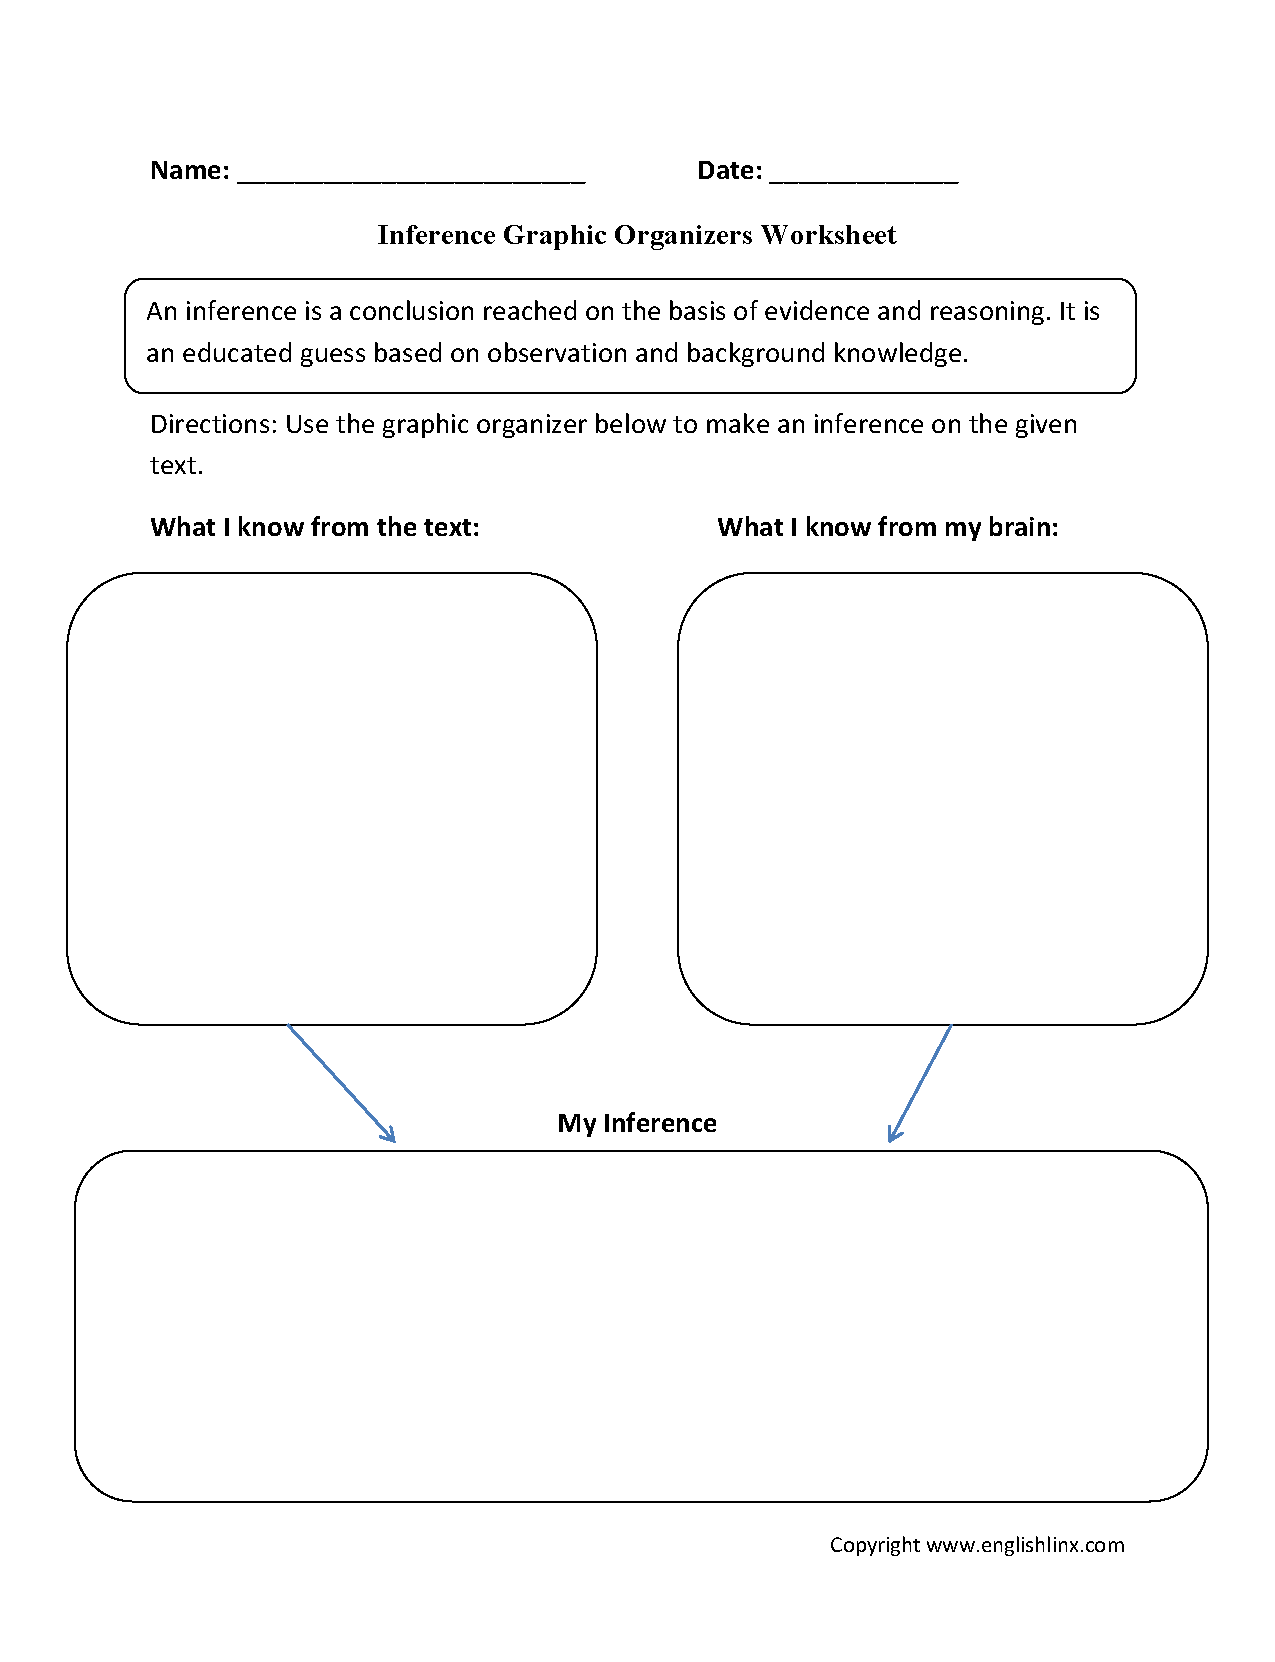 Free Worksheet 3rd Grade Inferencing Worksheets graphic organizers worksheets inference worksheets